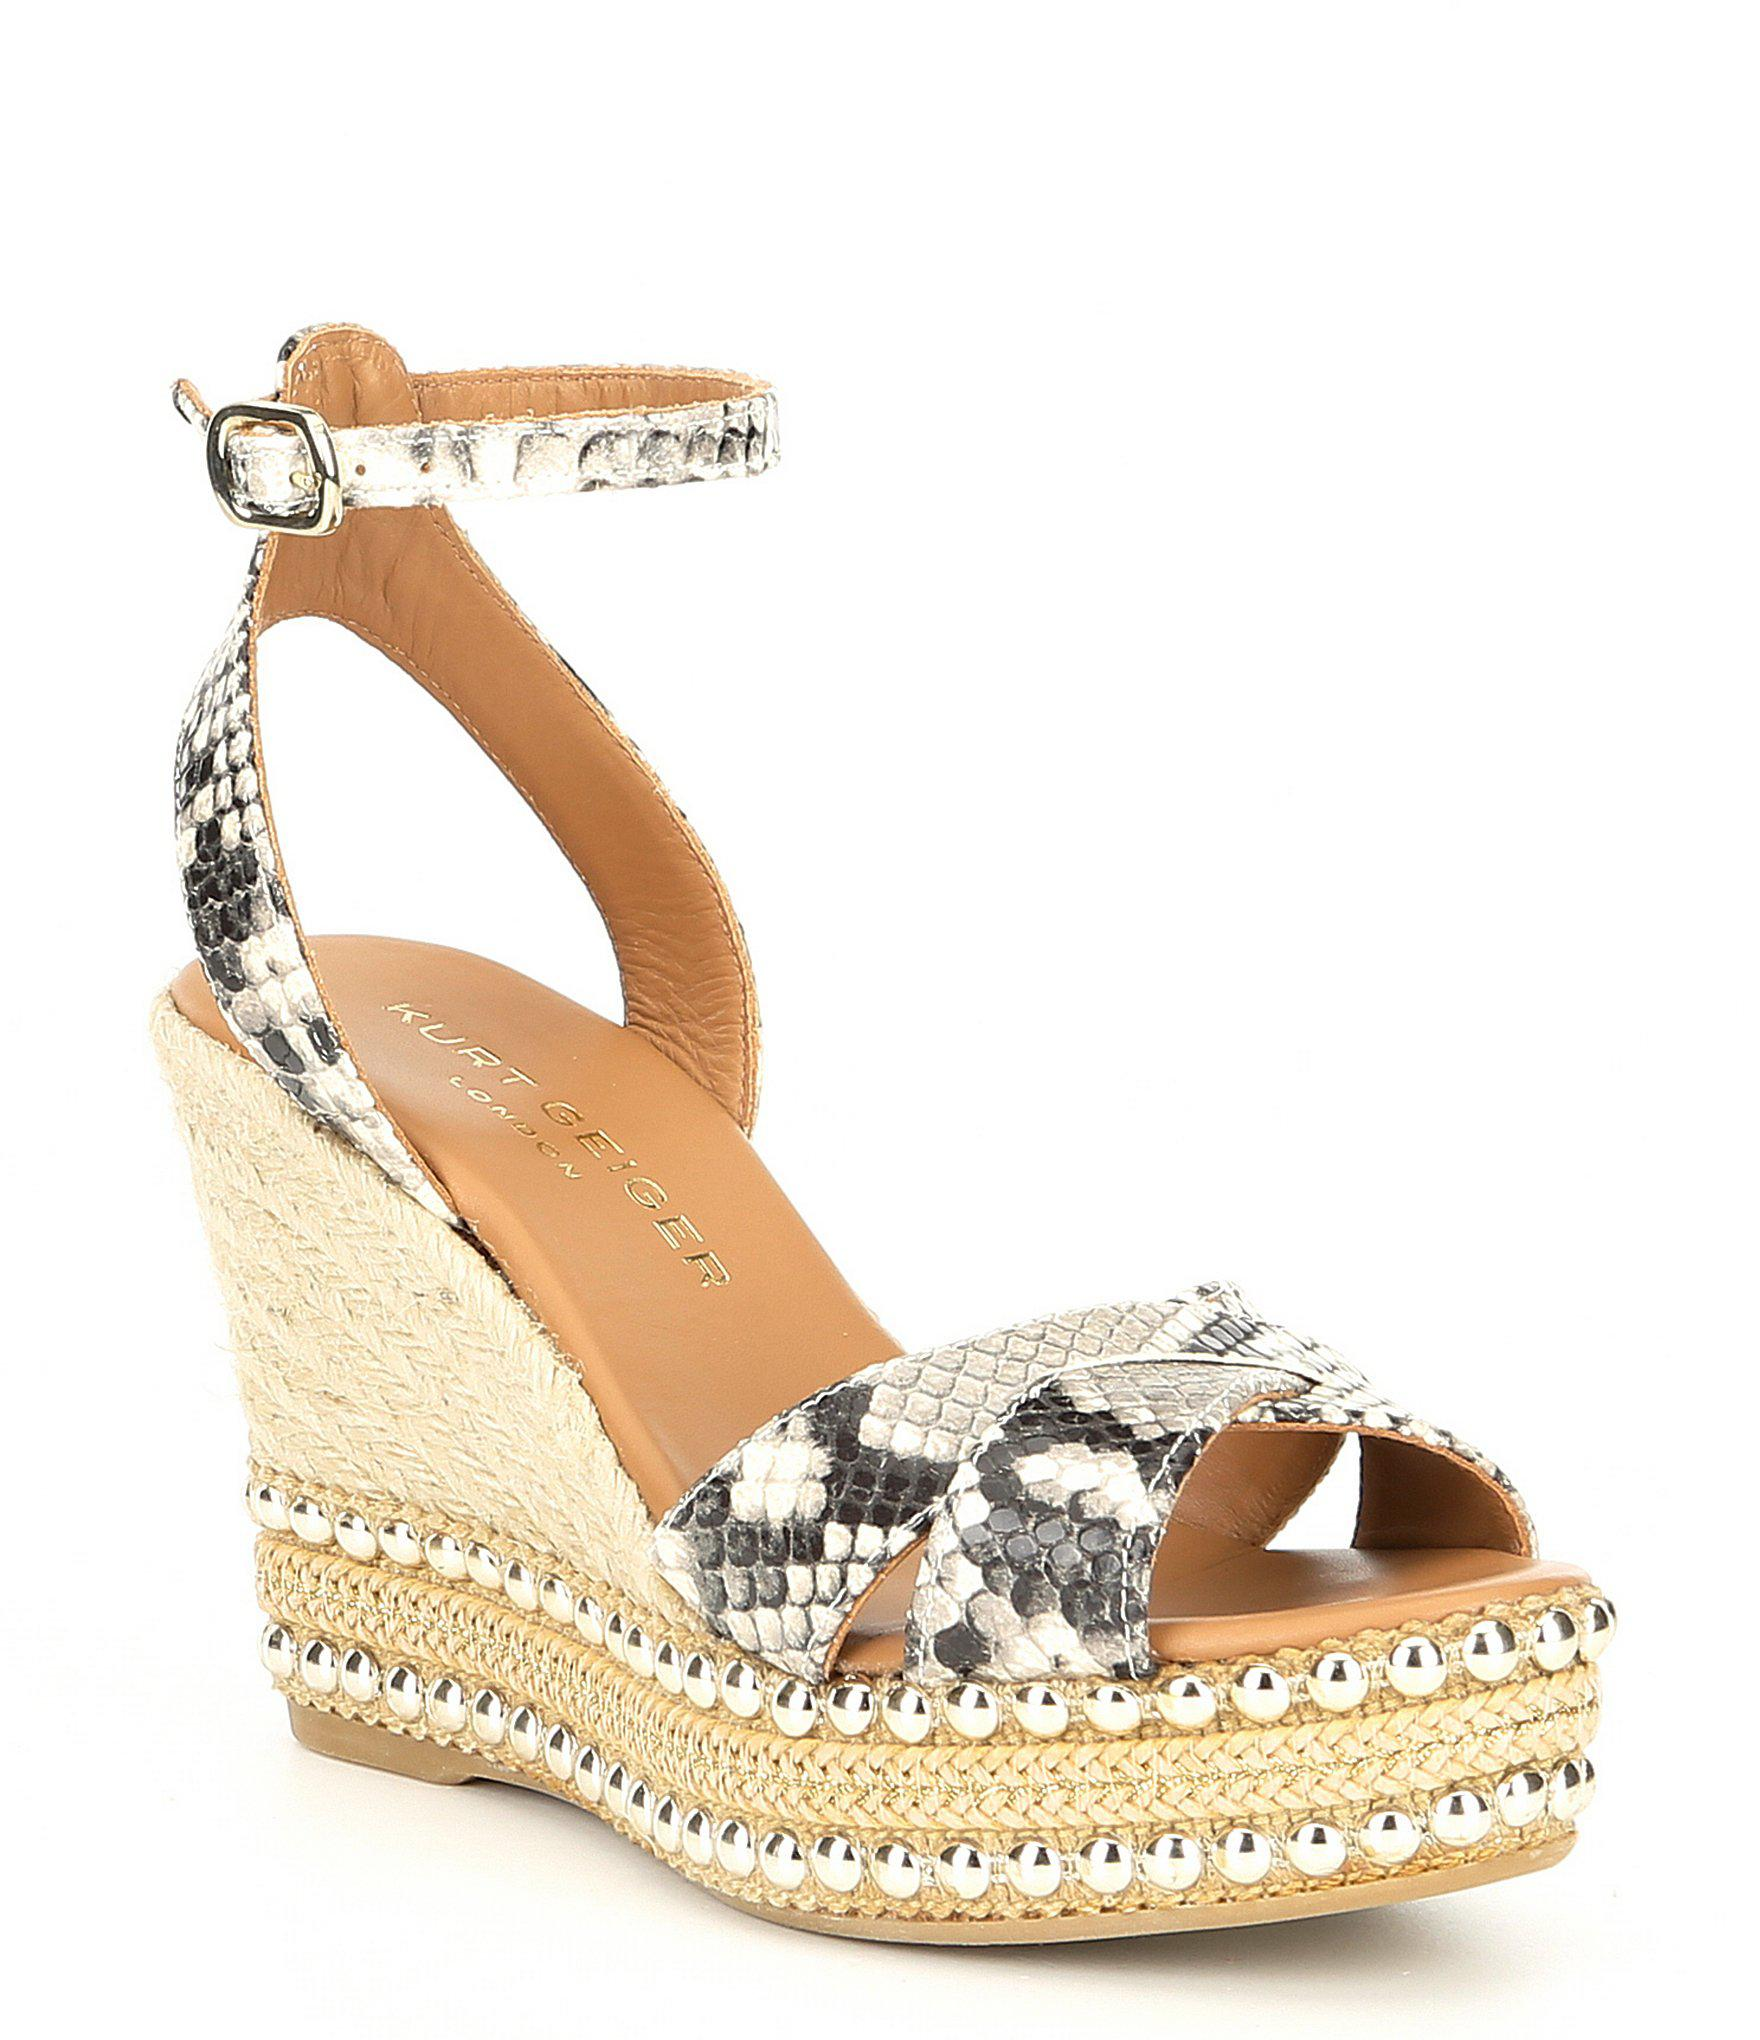 91728aa487f Lyst - Kurt Geiger Amelia Leather Espadrille Wedges in Natural